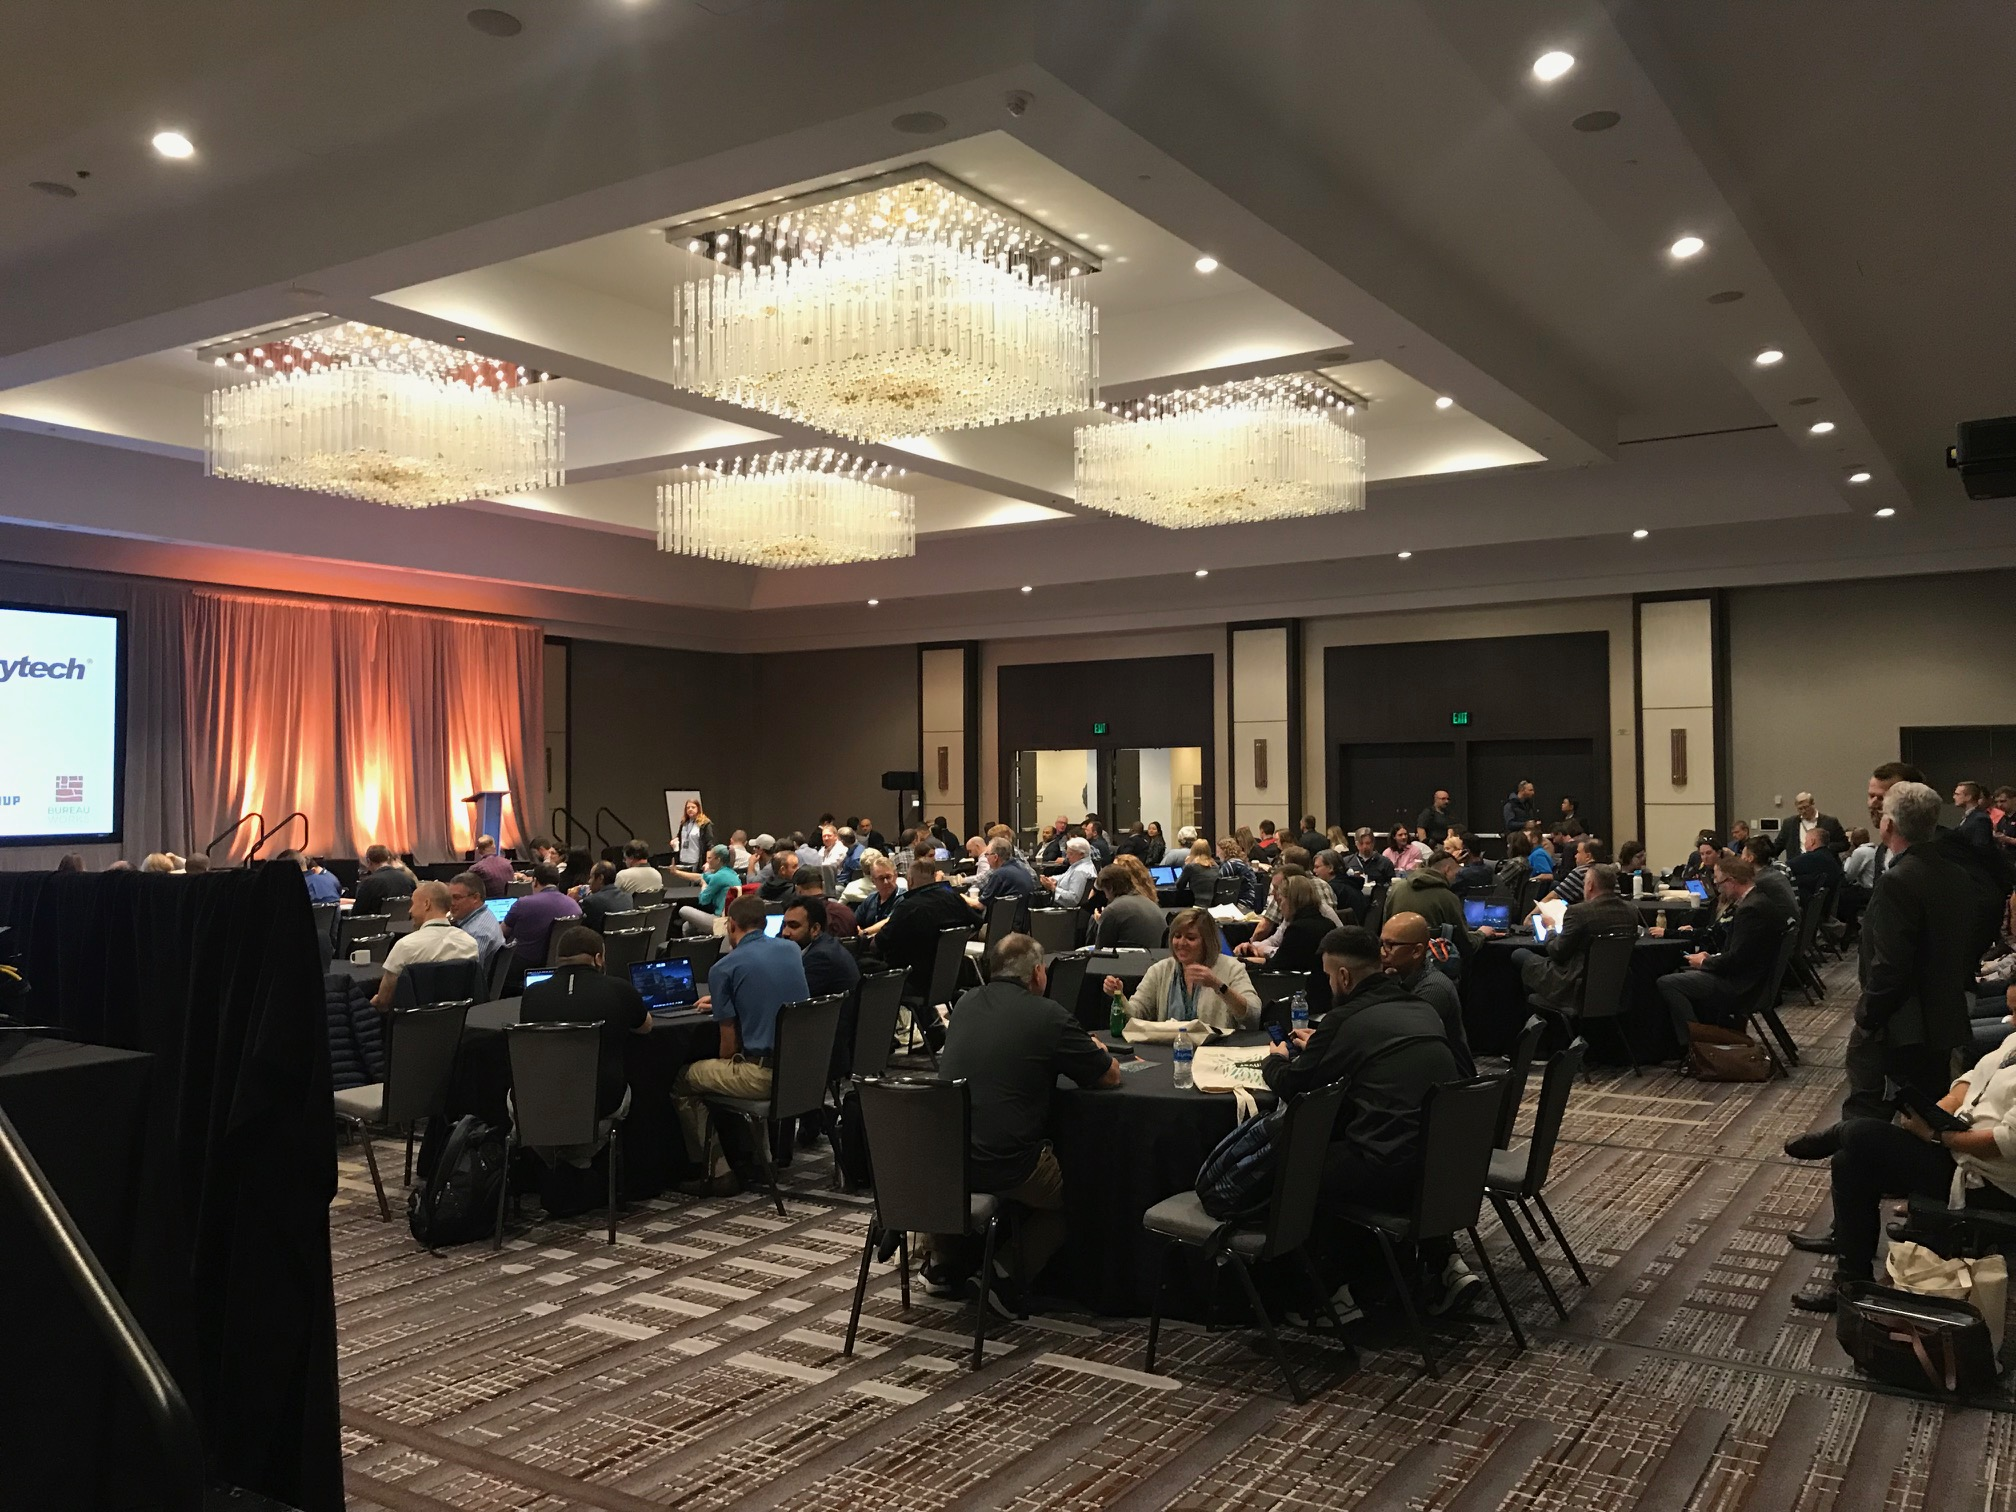 Several hundred customers, prospects, and partners could be found at Kentico Connect Denver which was held on October 2 – 3 at the Grand Hyatt Denver Downtown